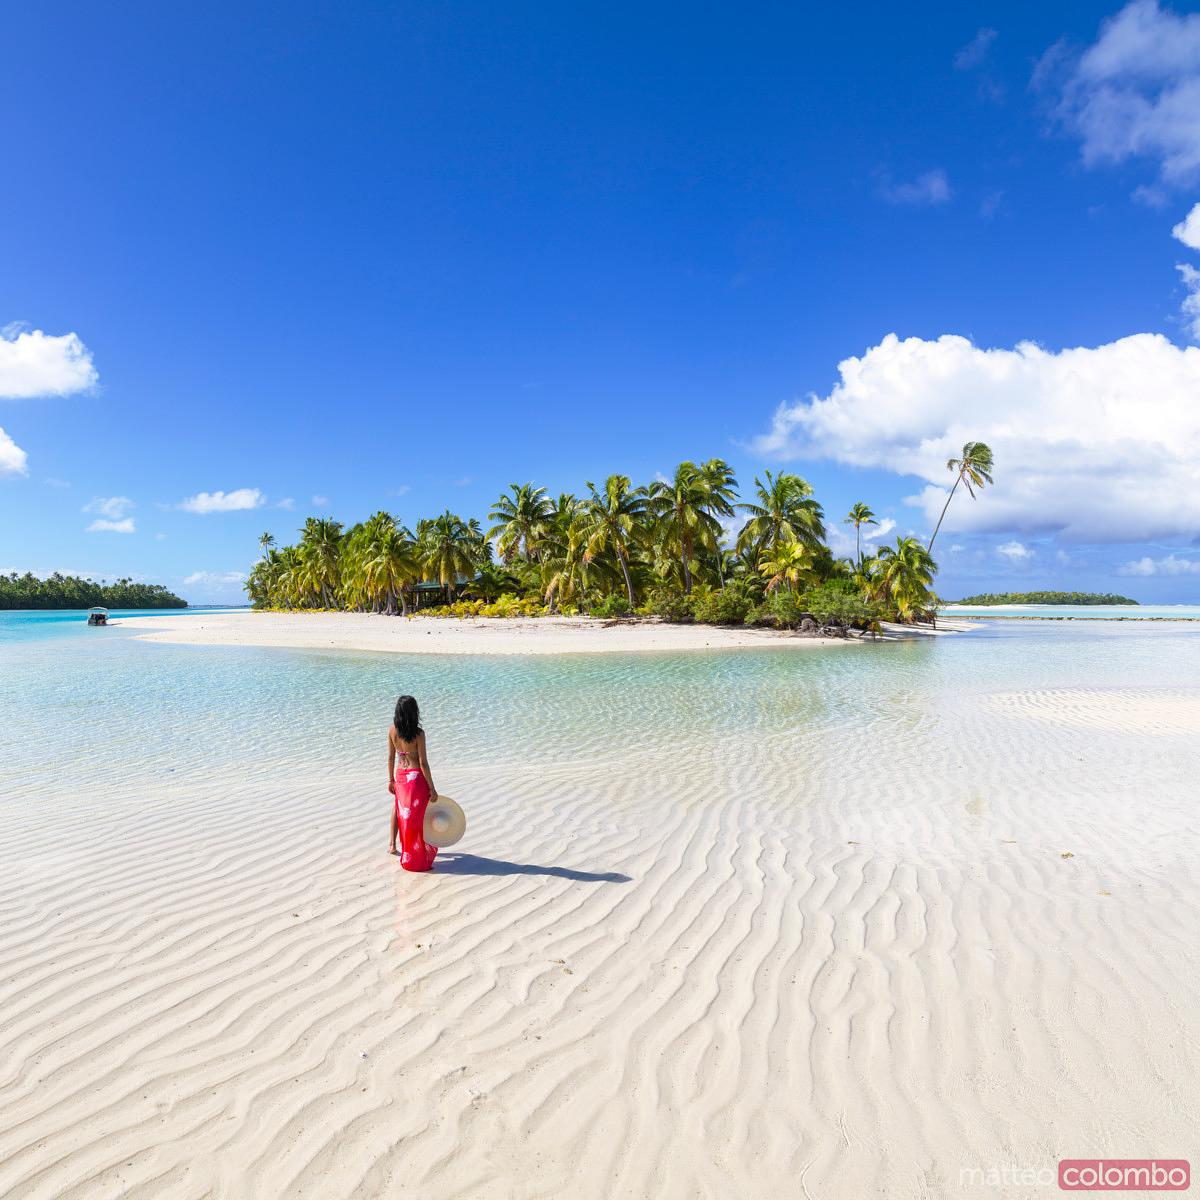 Cook Islands Beaches: Matteo Colombo Travel Photography